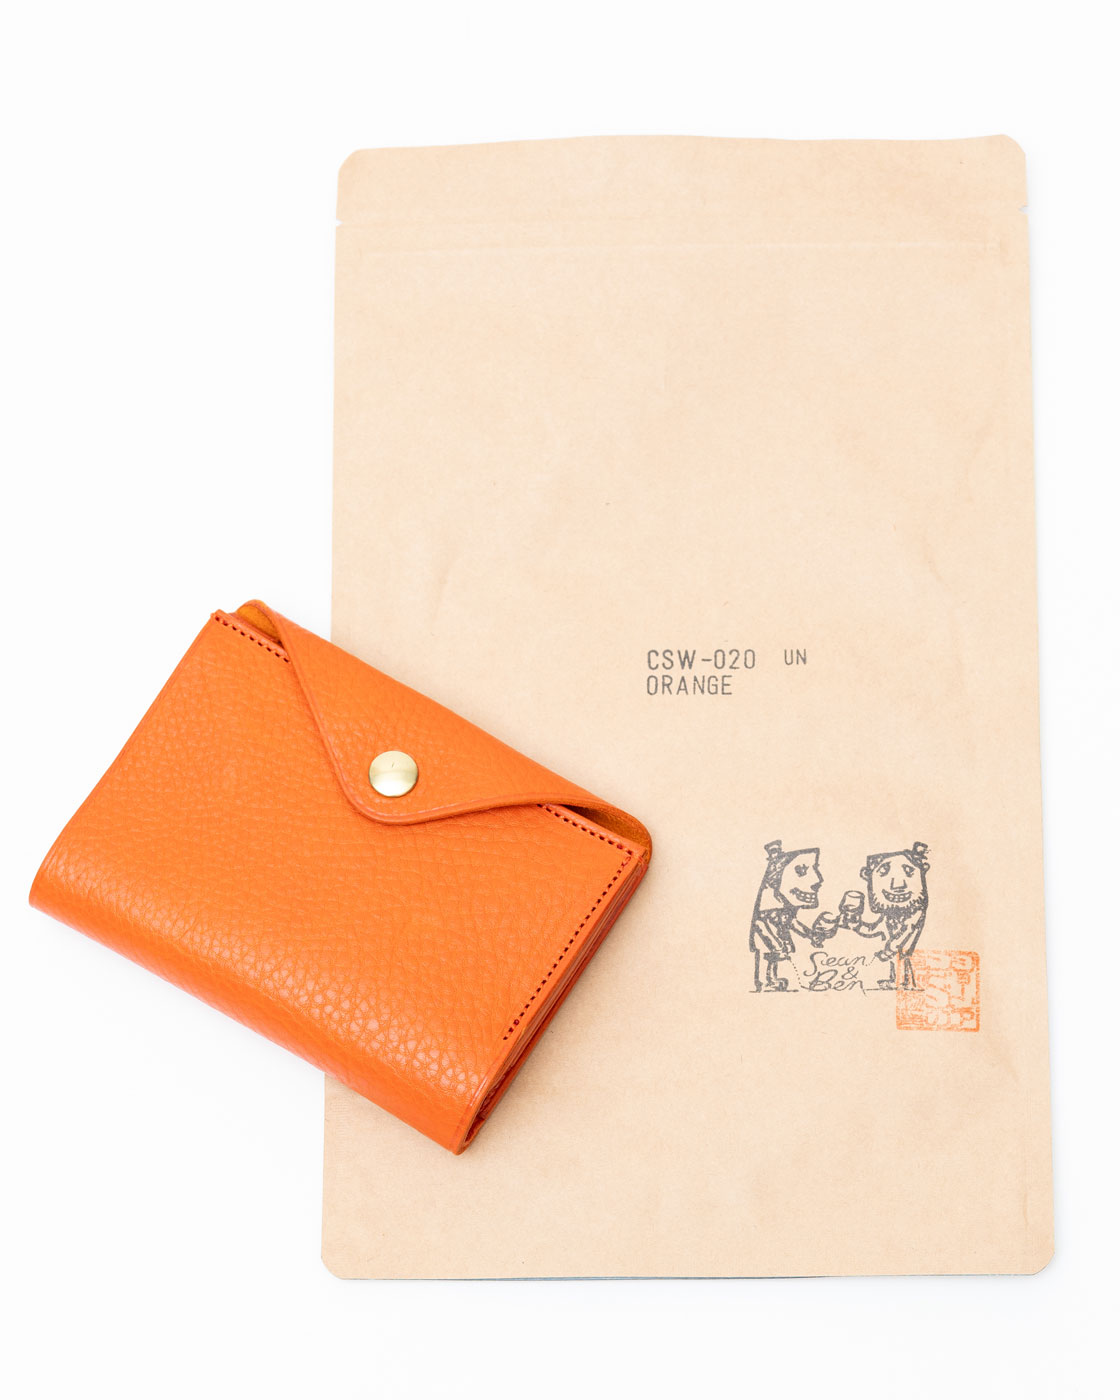 【別注】BILLFOLD WALLET